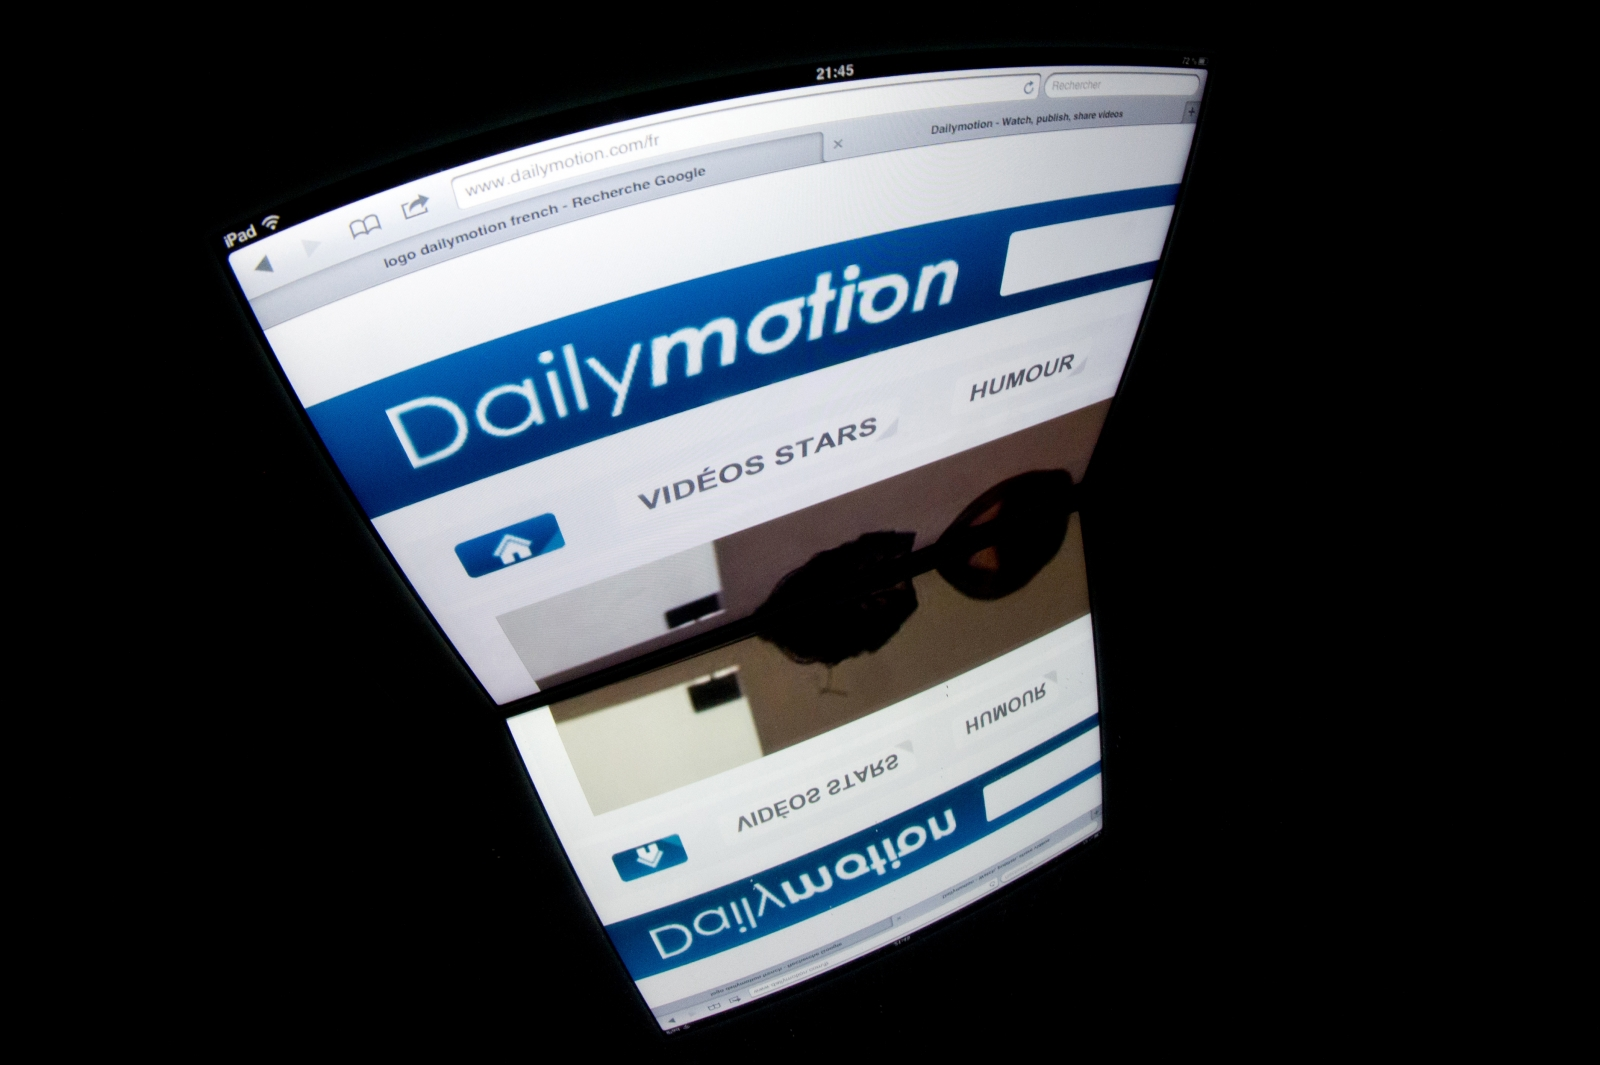 DailyMotion hack leaves over 85 million user accounts exposed